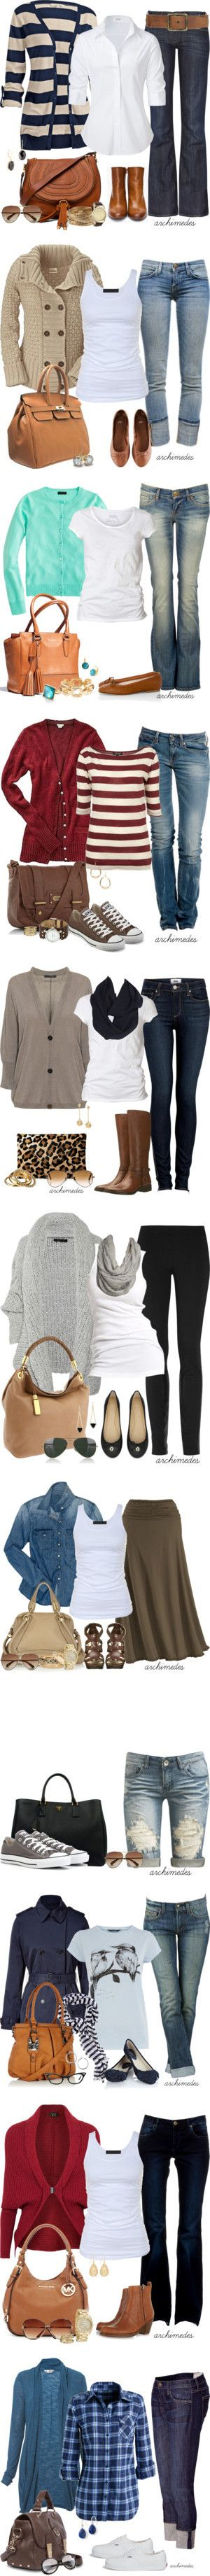 """Comfy, Casual and Cute"" by archimedes16 on Polyvore"